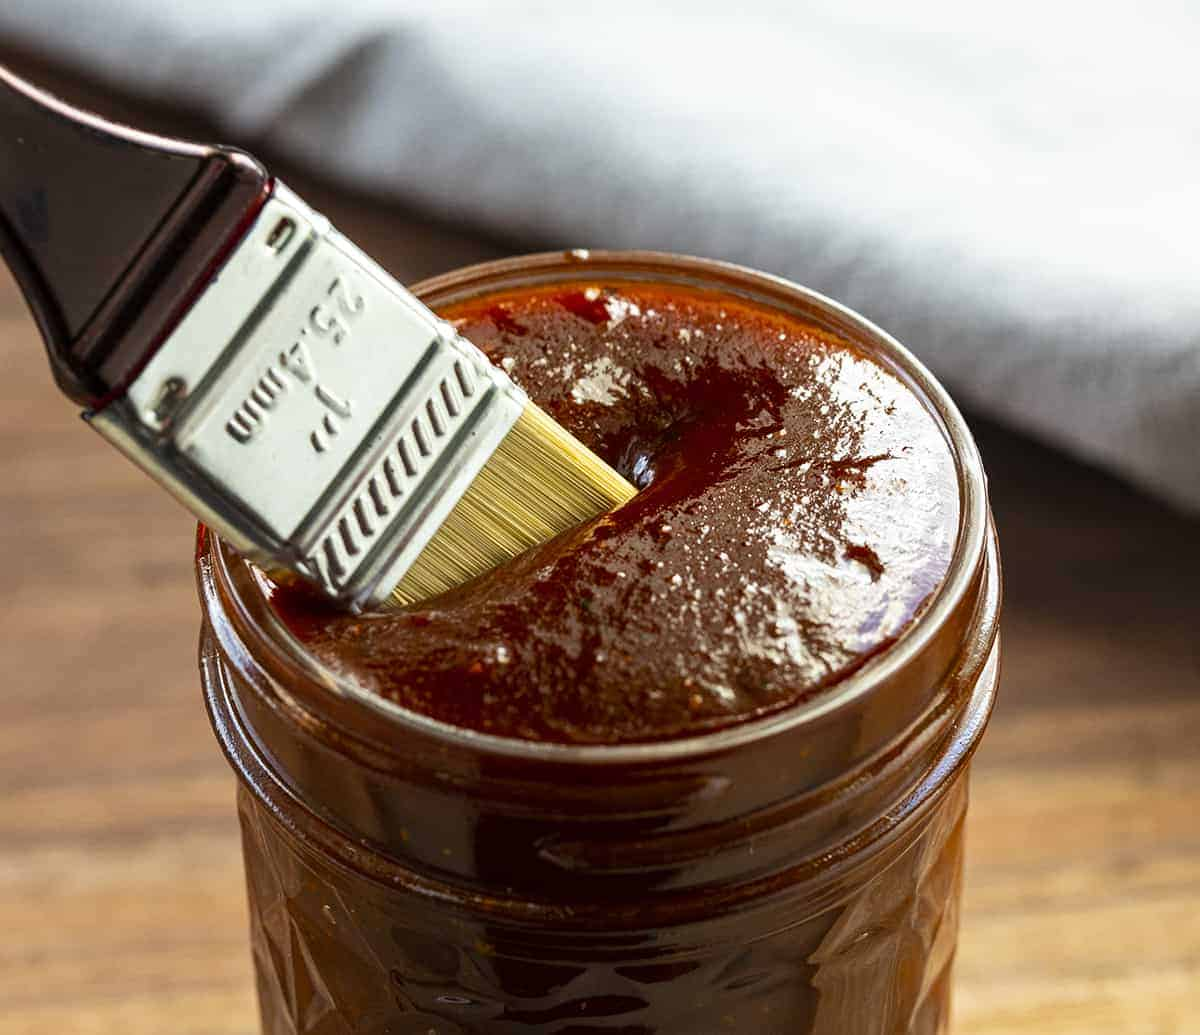 Dipping Brush into BBQ Sauce in a Jar